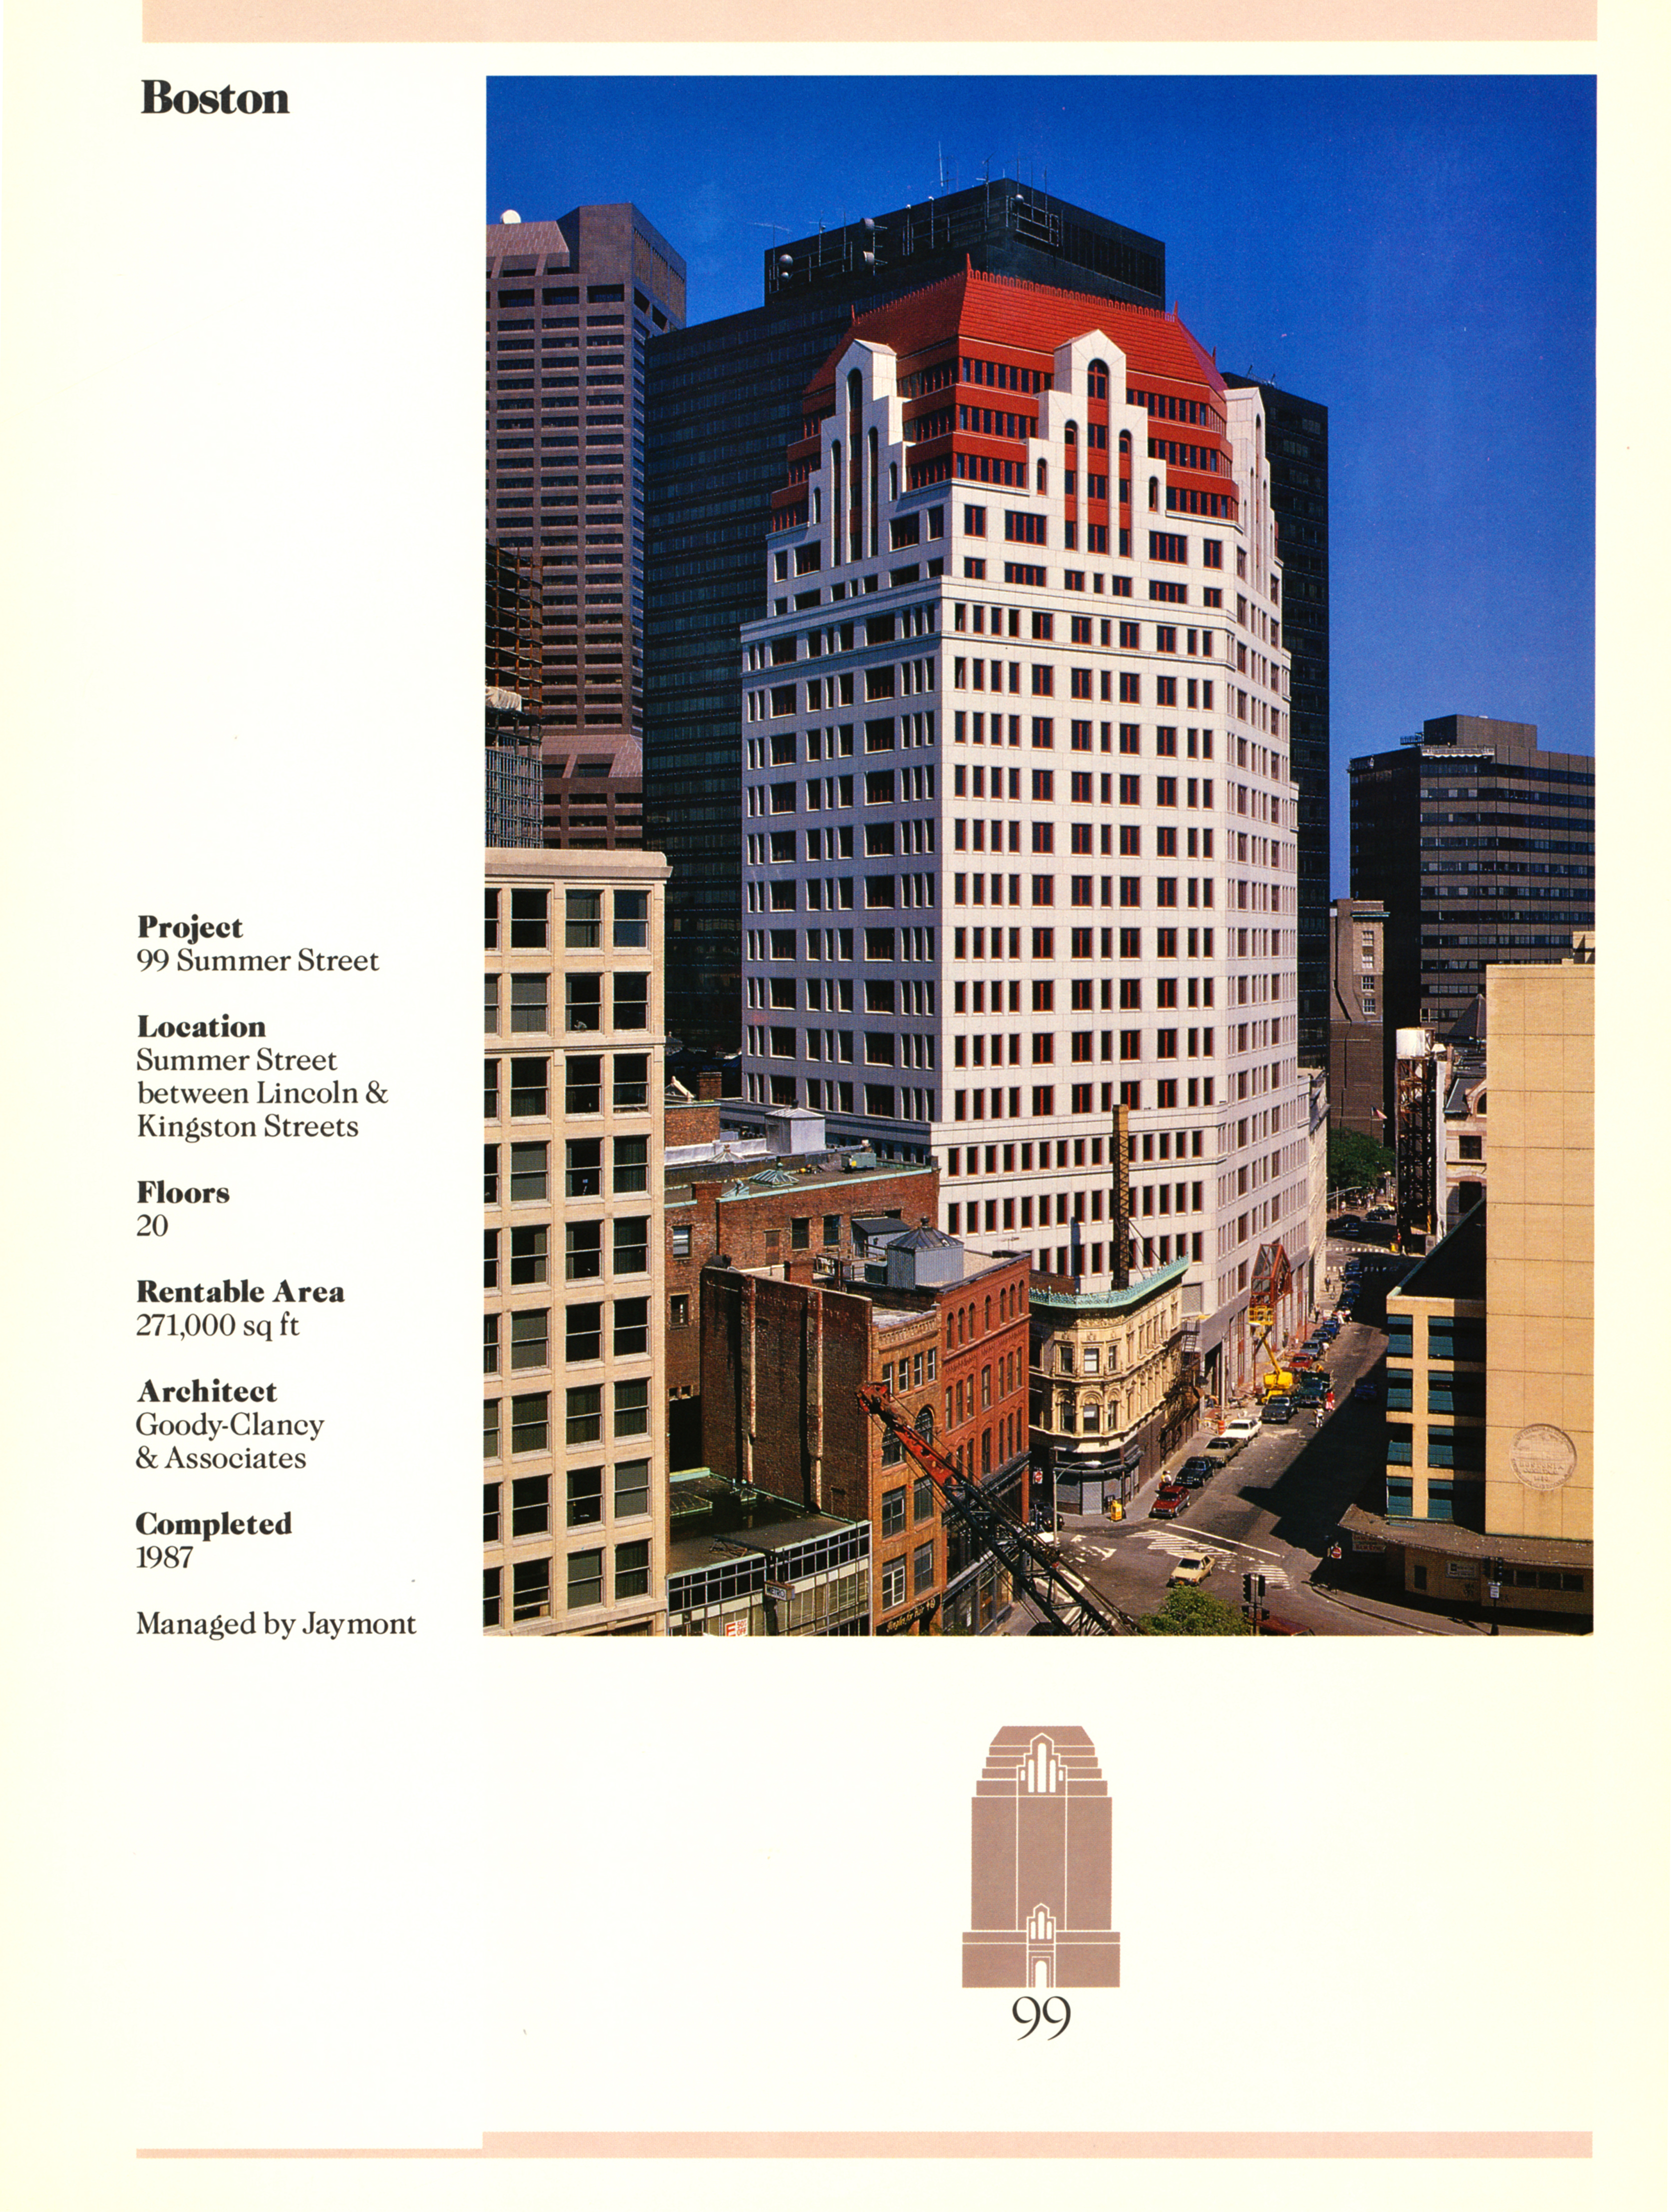 Fact sheet with large image and detailed stats for the building.